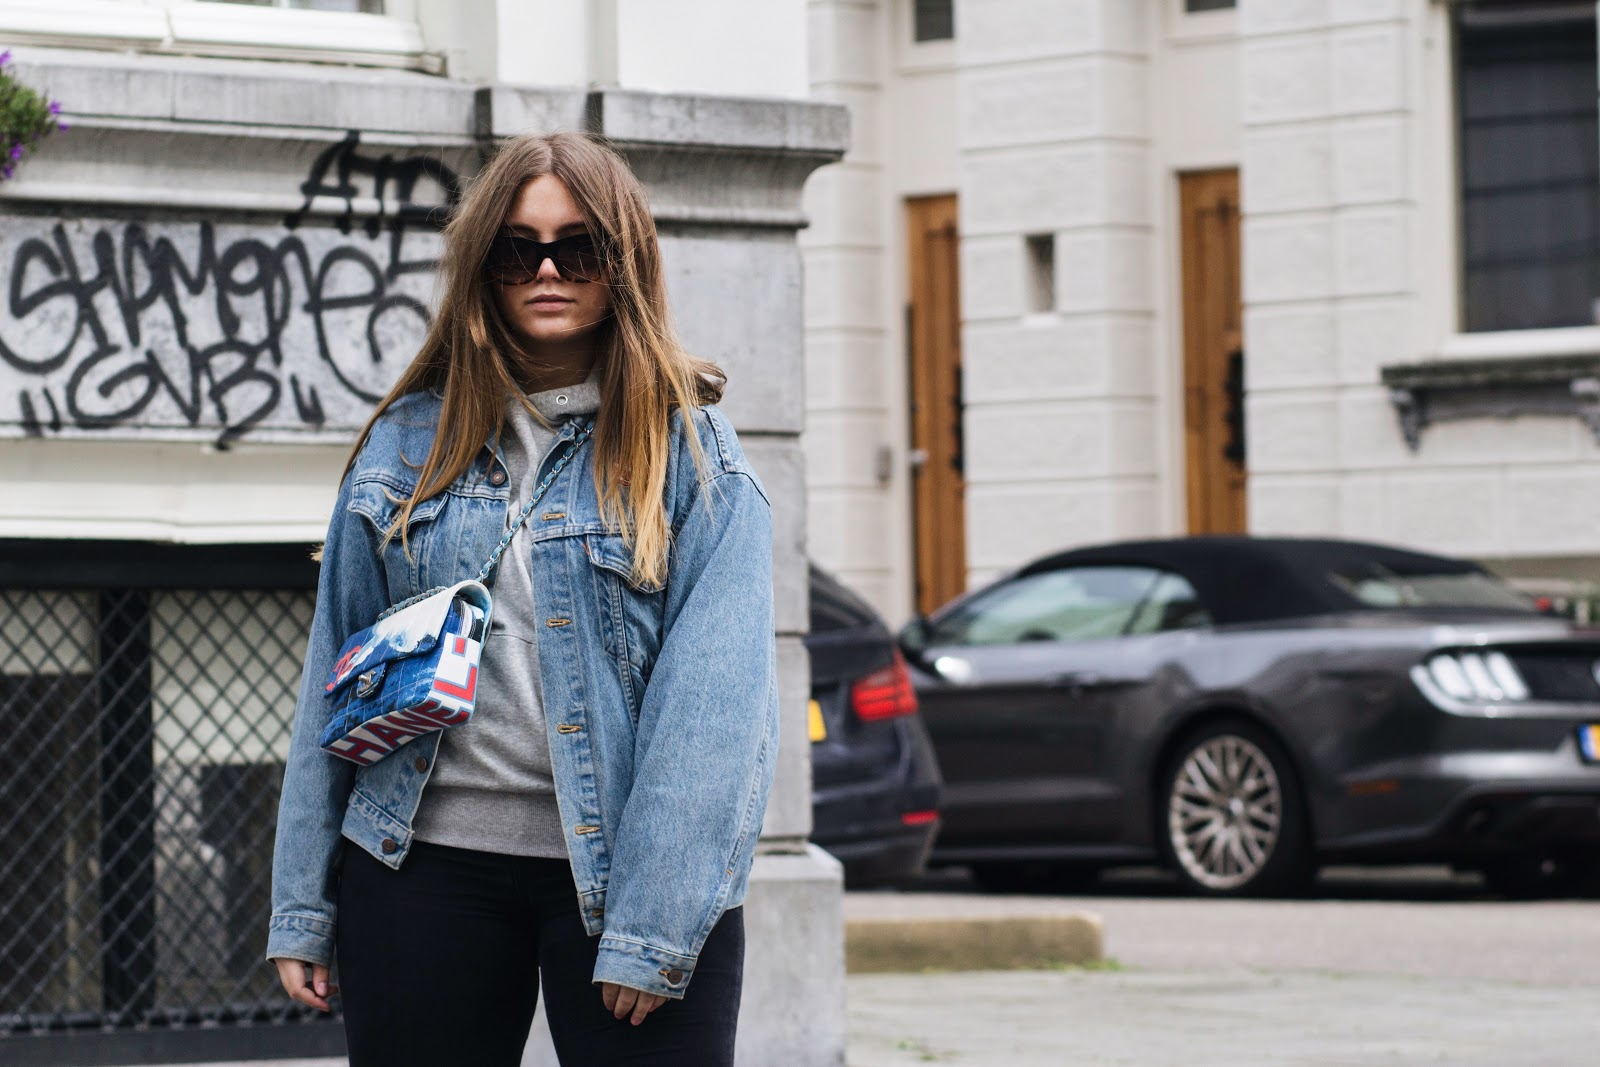 fashion blogger dominique candido wearing a levi's jacket with a h&m hoodie, gucci snake loafers, black asos jeans, celine sunglasses and a chanel bag